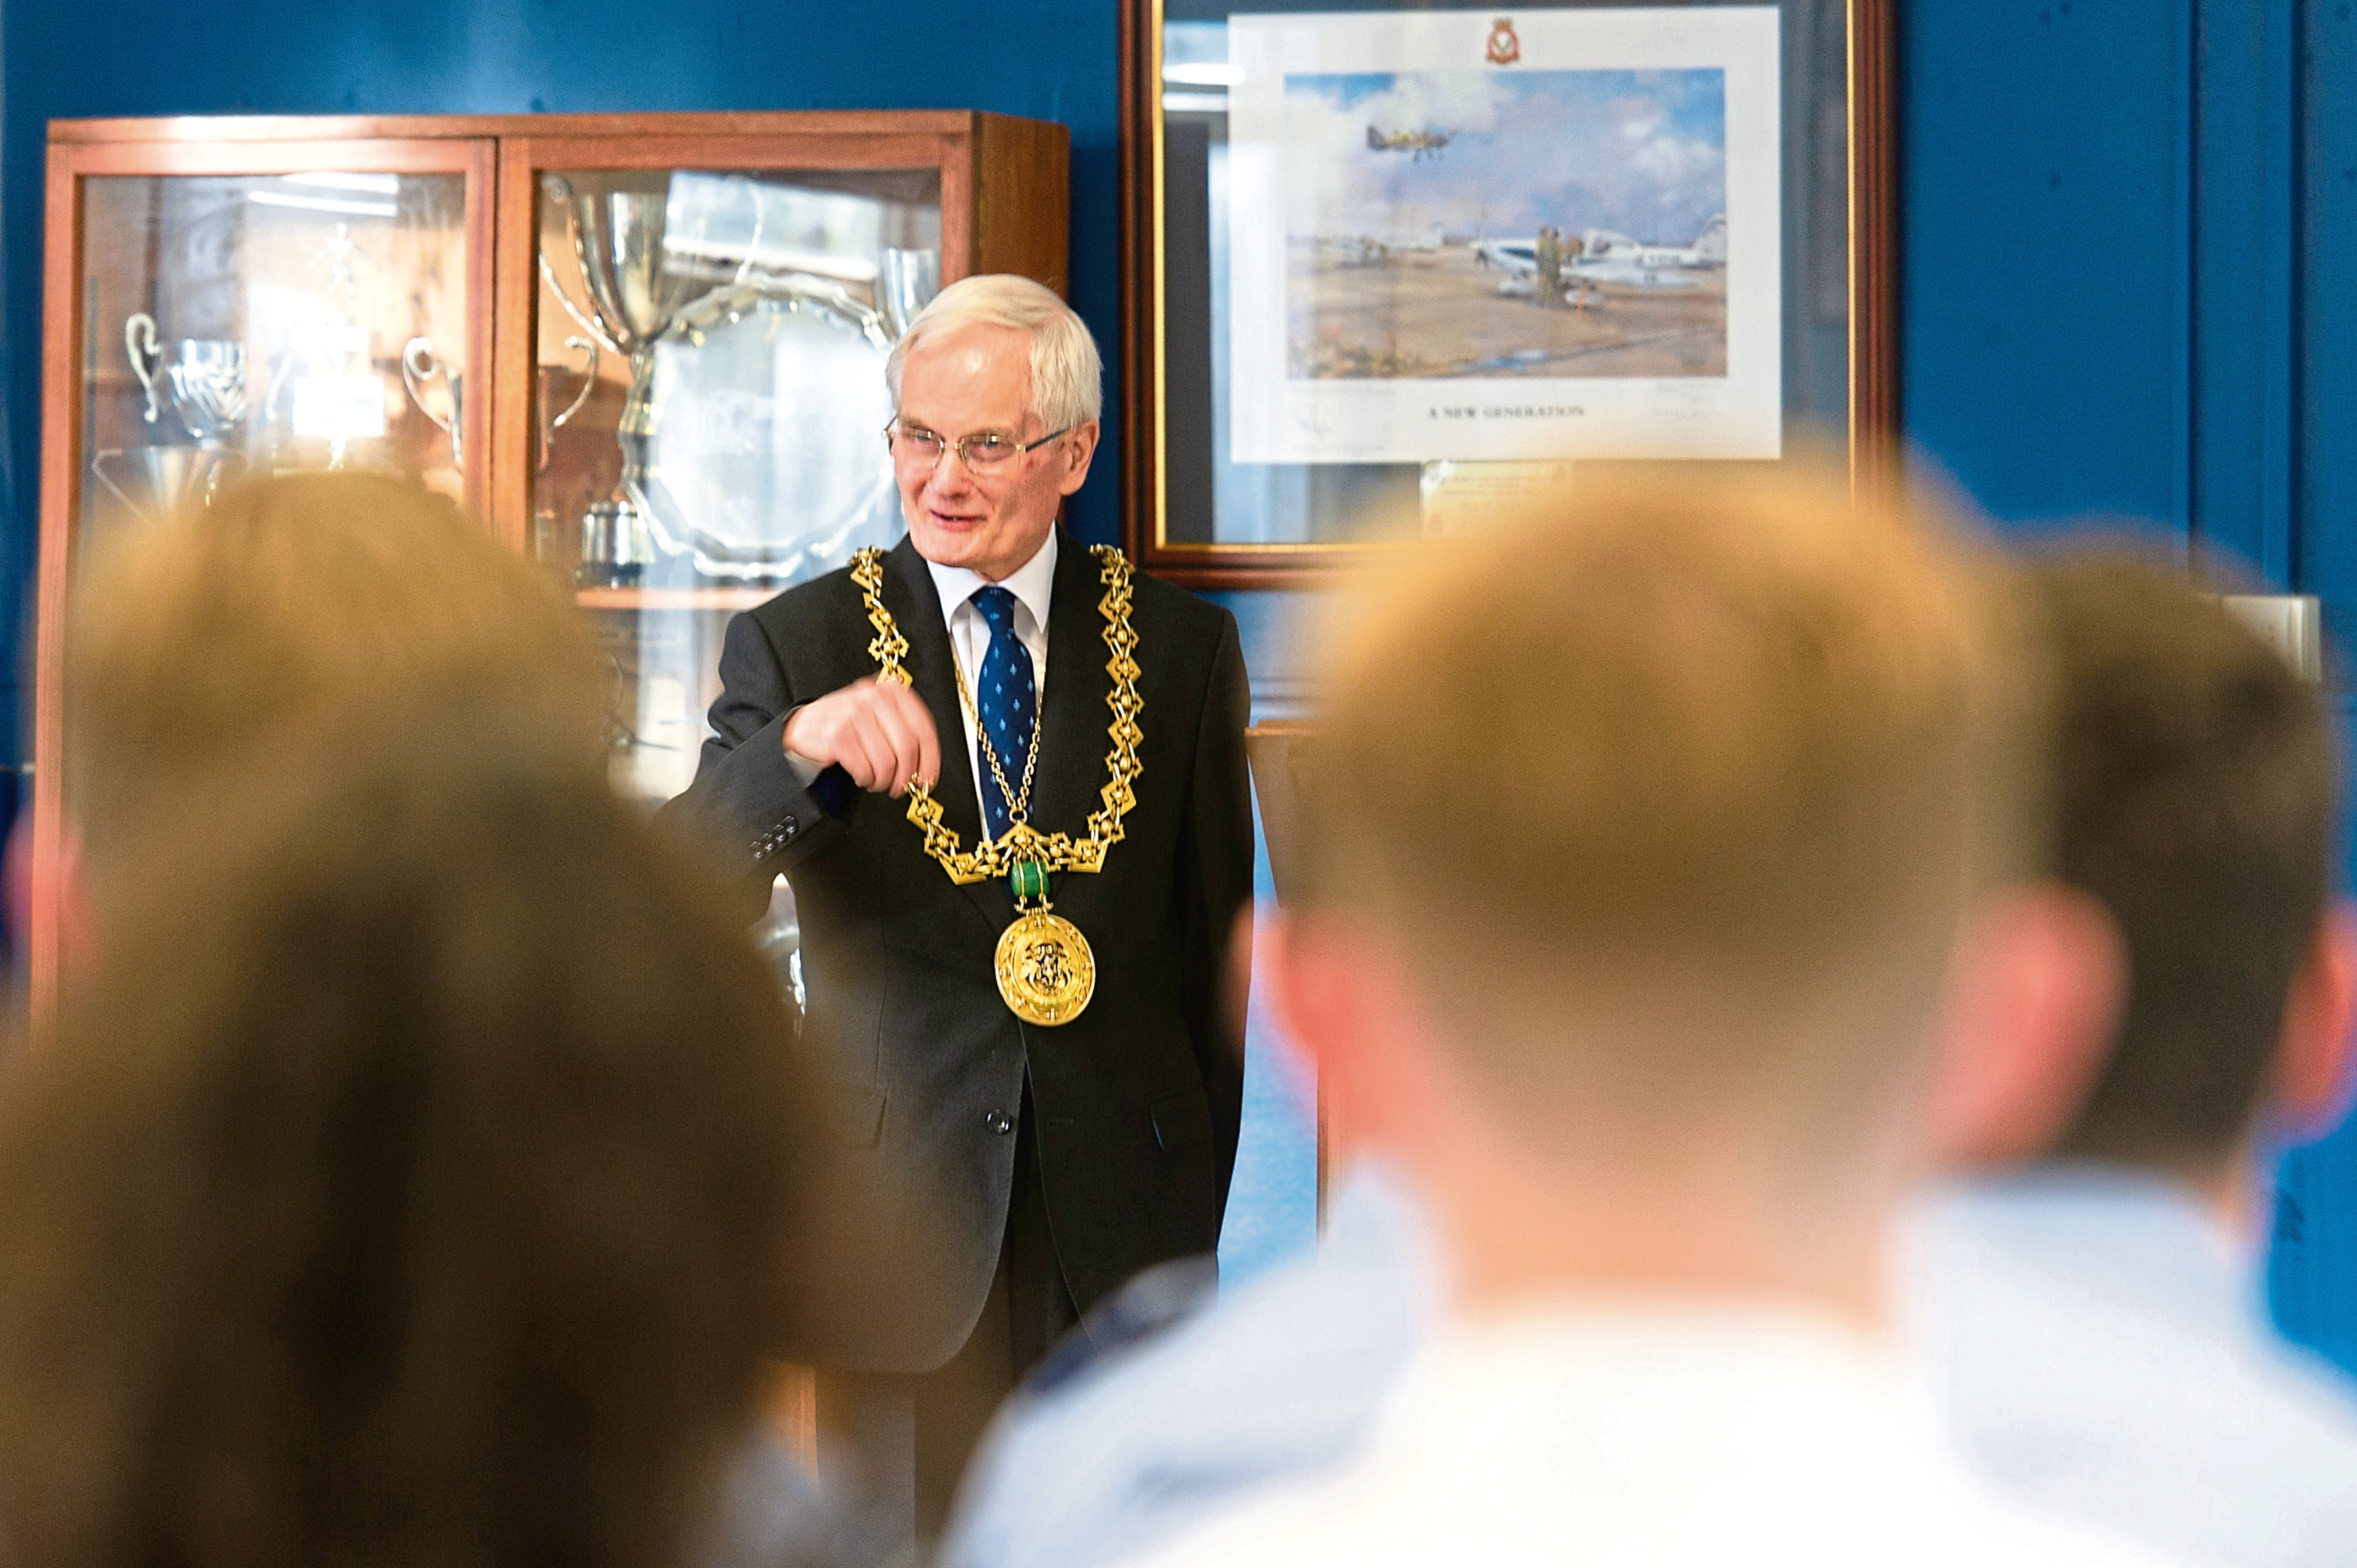 The Lord Provost of Dundee visits his old cadet squadron.